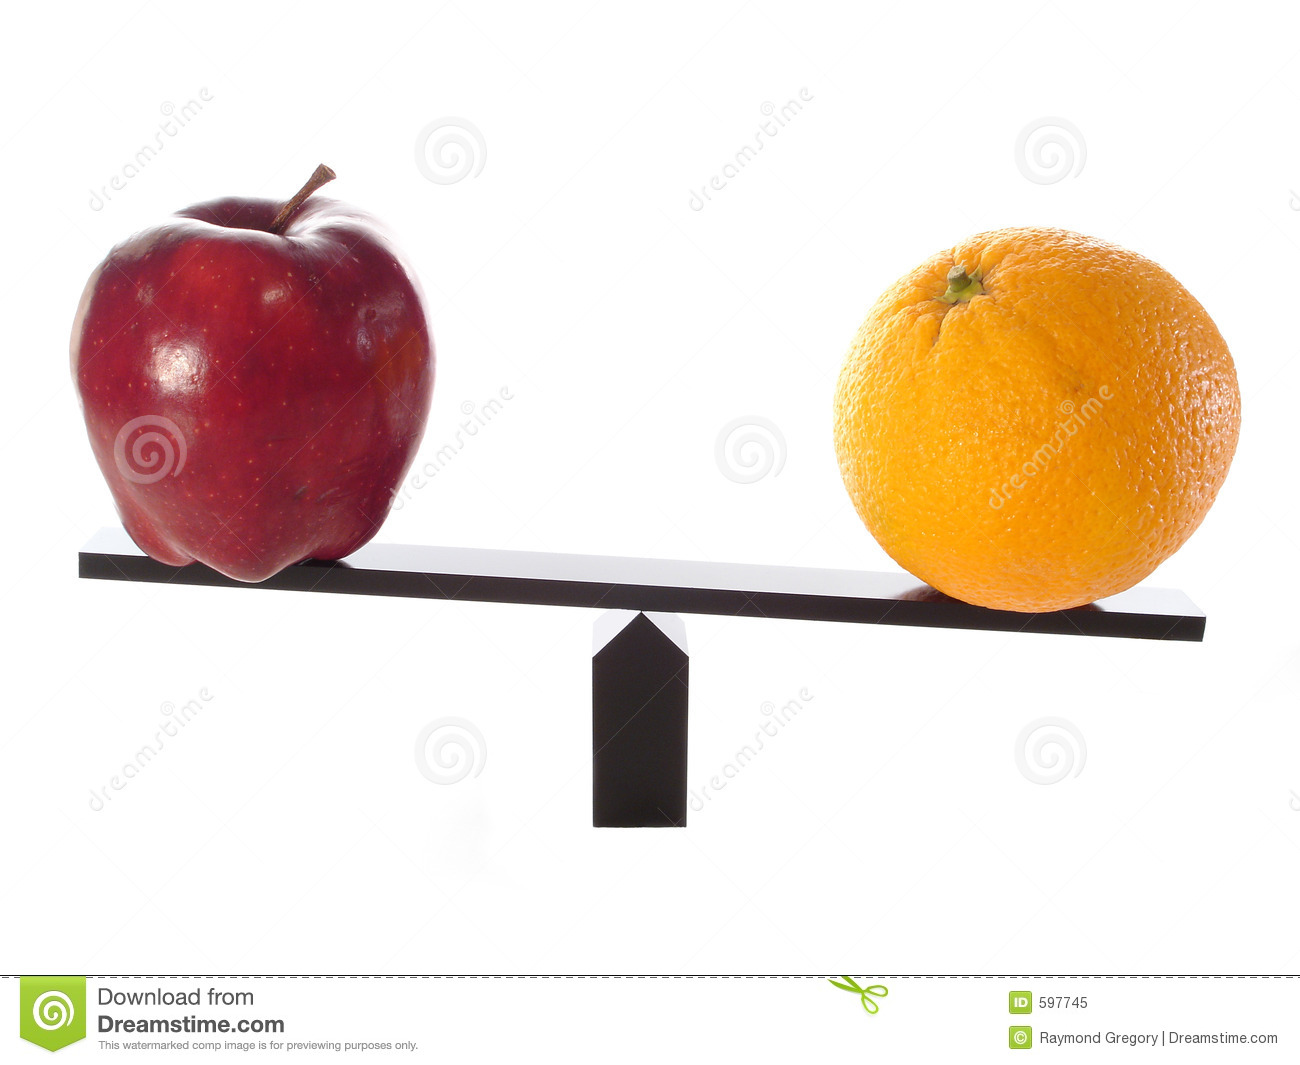 Comparing Apples To Oranges Royalty Free Stock Photo - Image: 597745